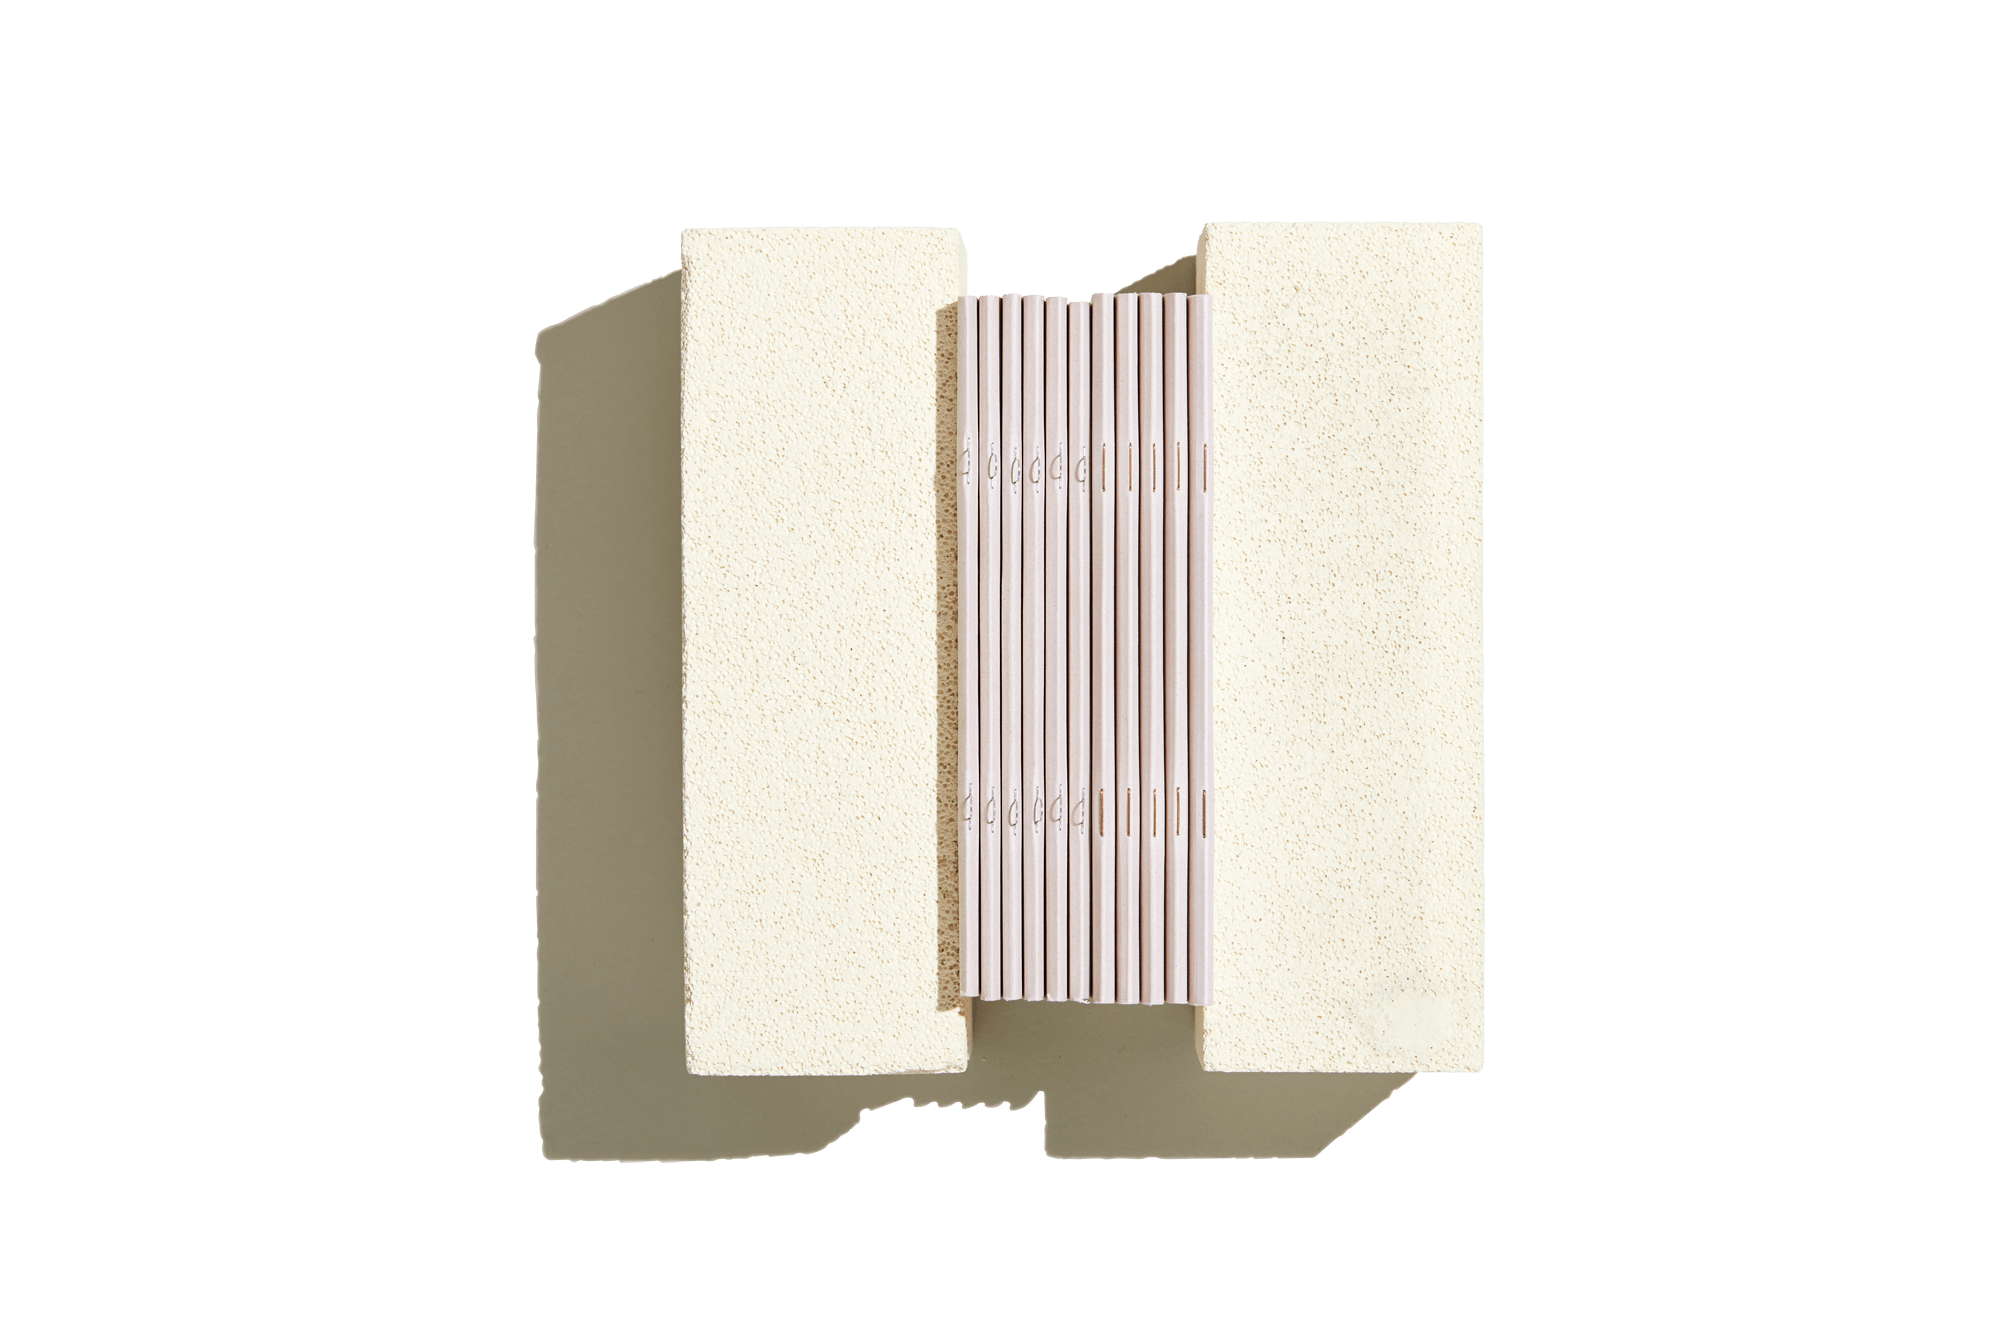 Before-Breakfast-handmade-in-london-book-binding-saddle-stitching-loop-stitching-stationery.png